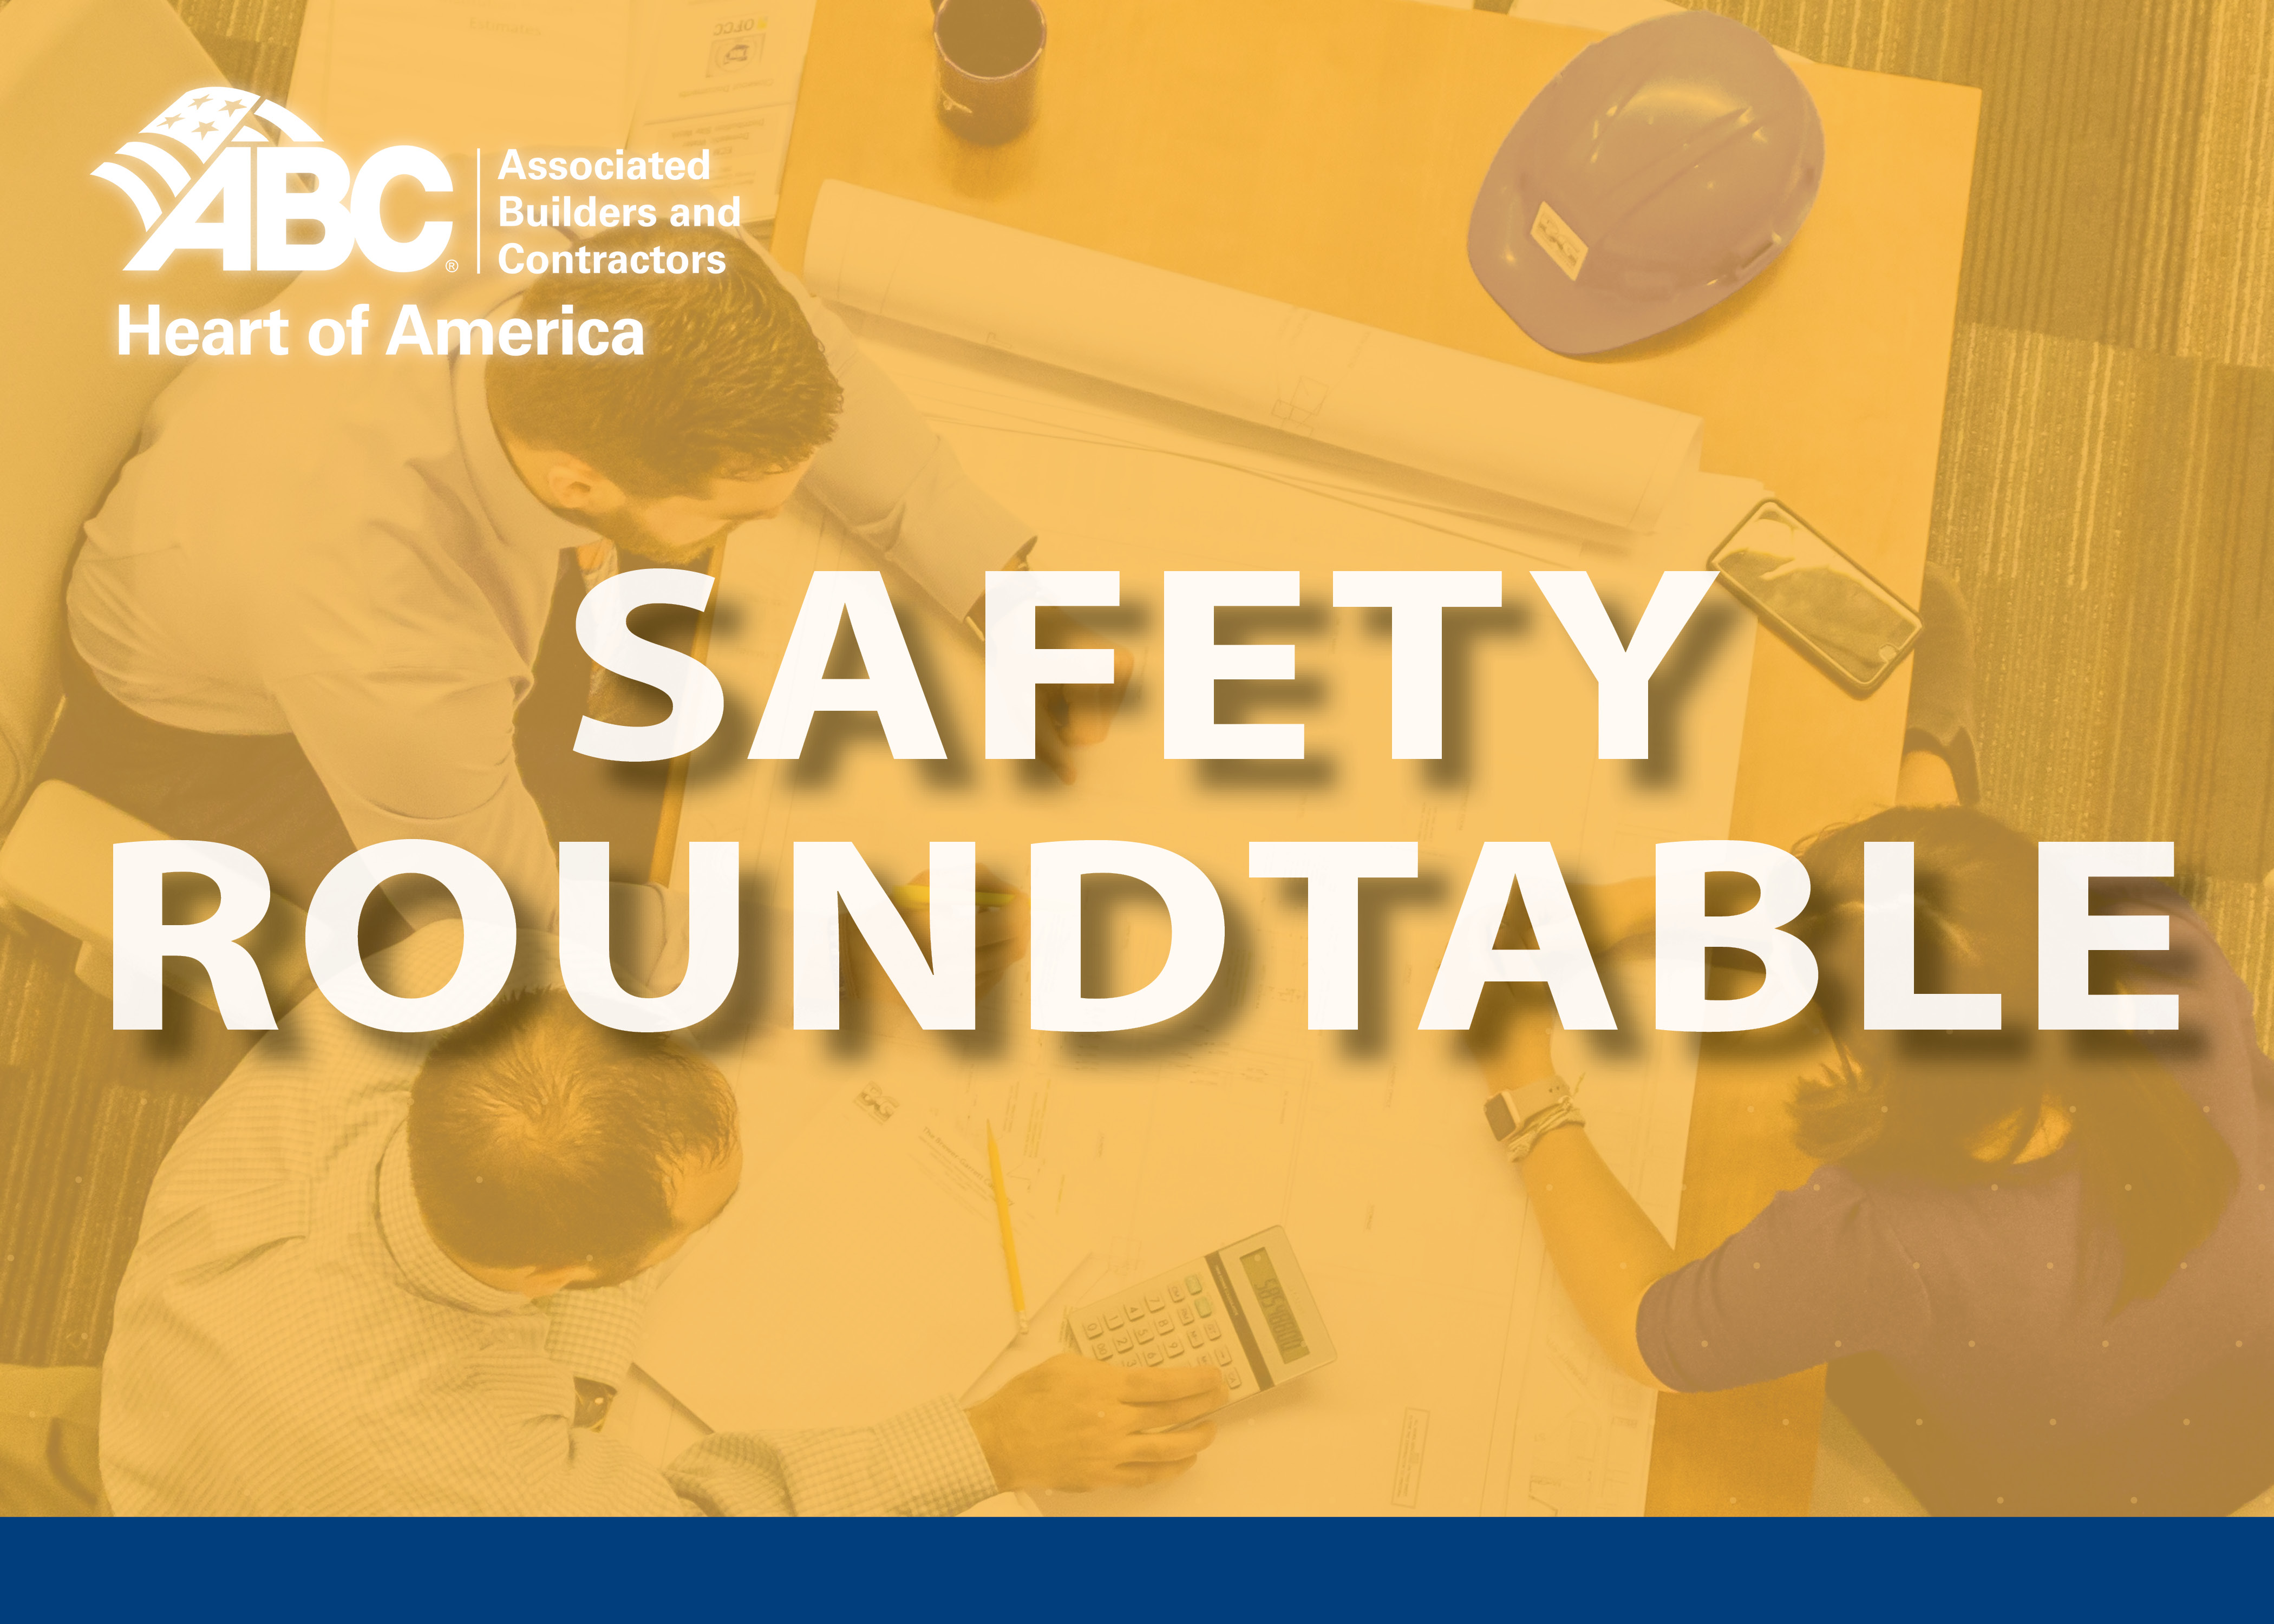 Behavioral Safety: Roundtable Discussion